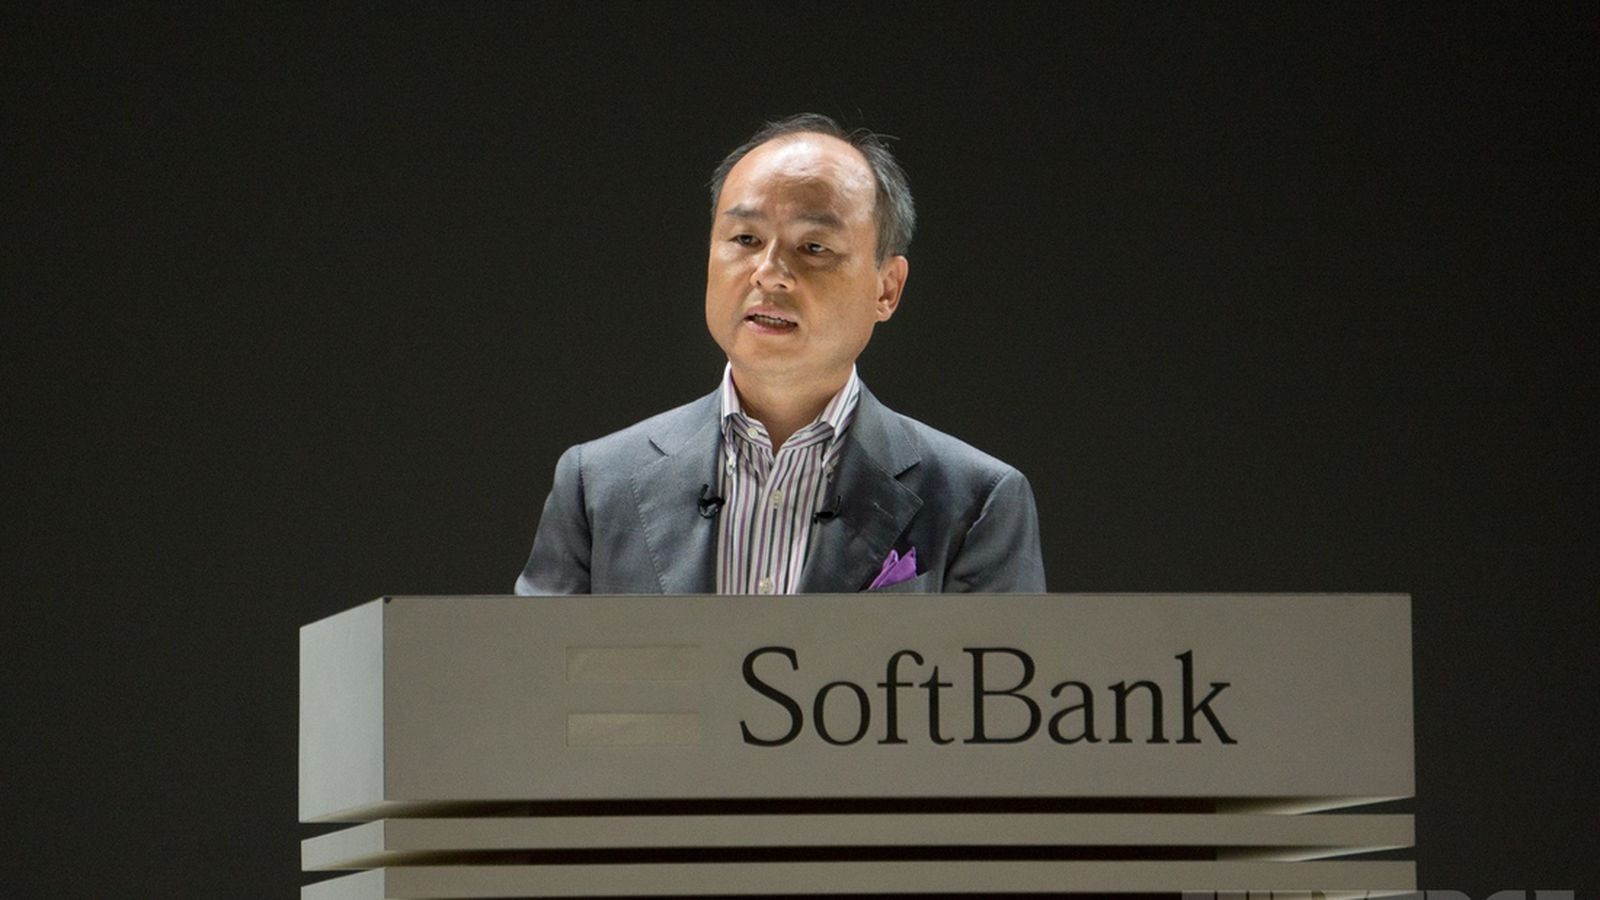 softbank ceo touts 4g expertise as major advantage in. Black Bedroom Furniture Sets. Home Design Ideas